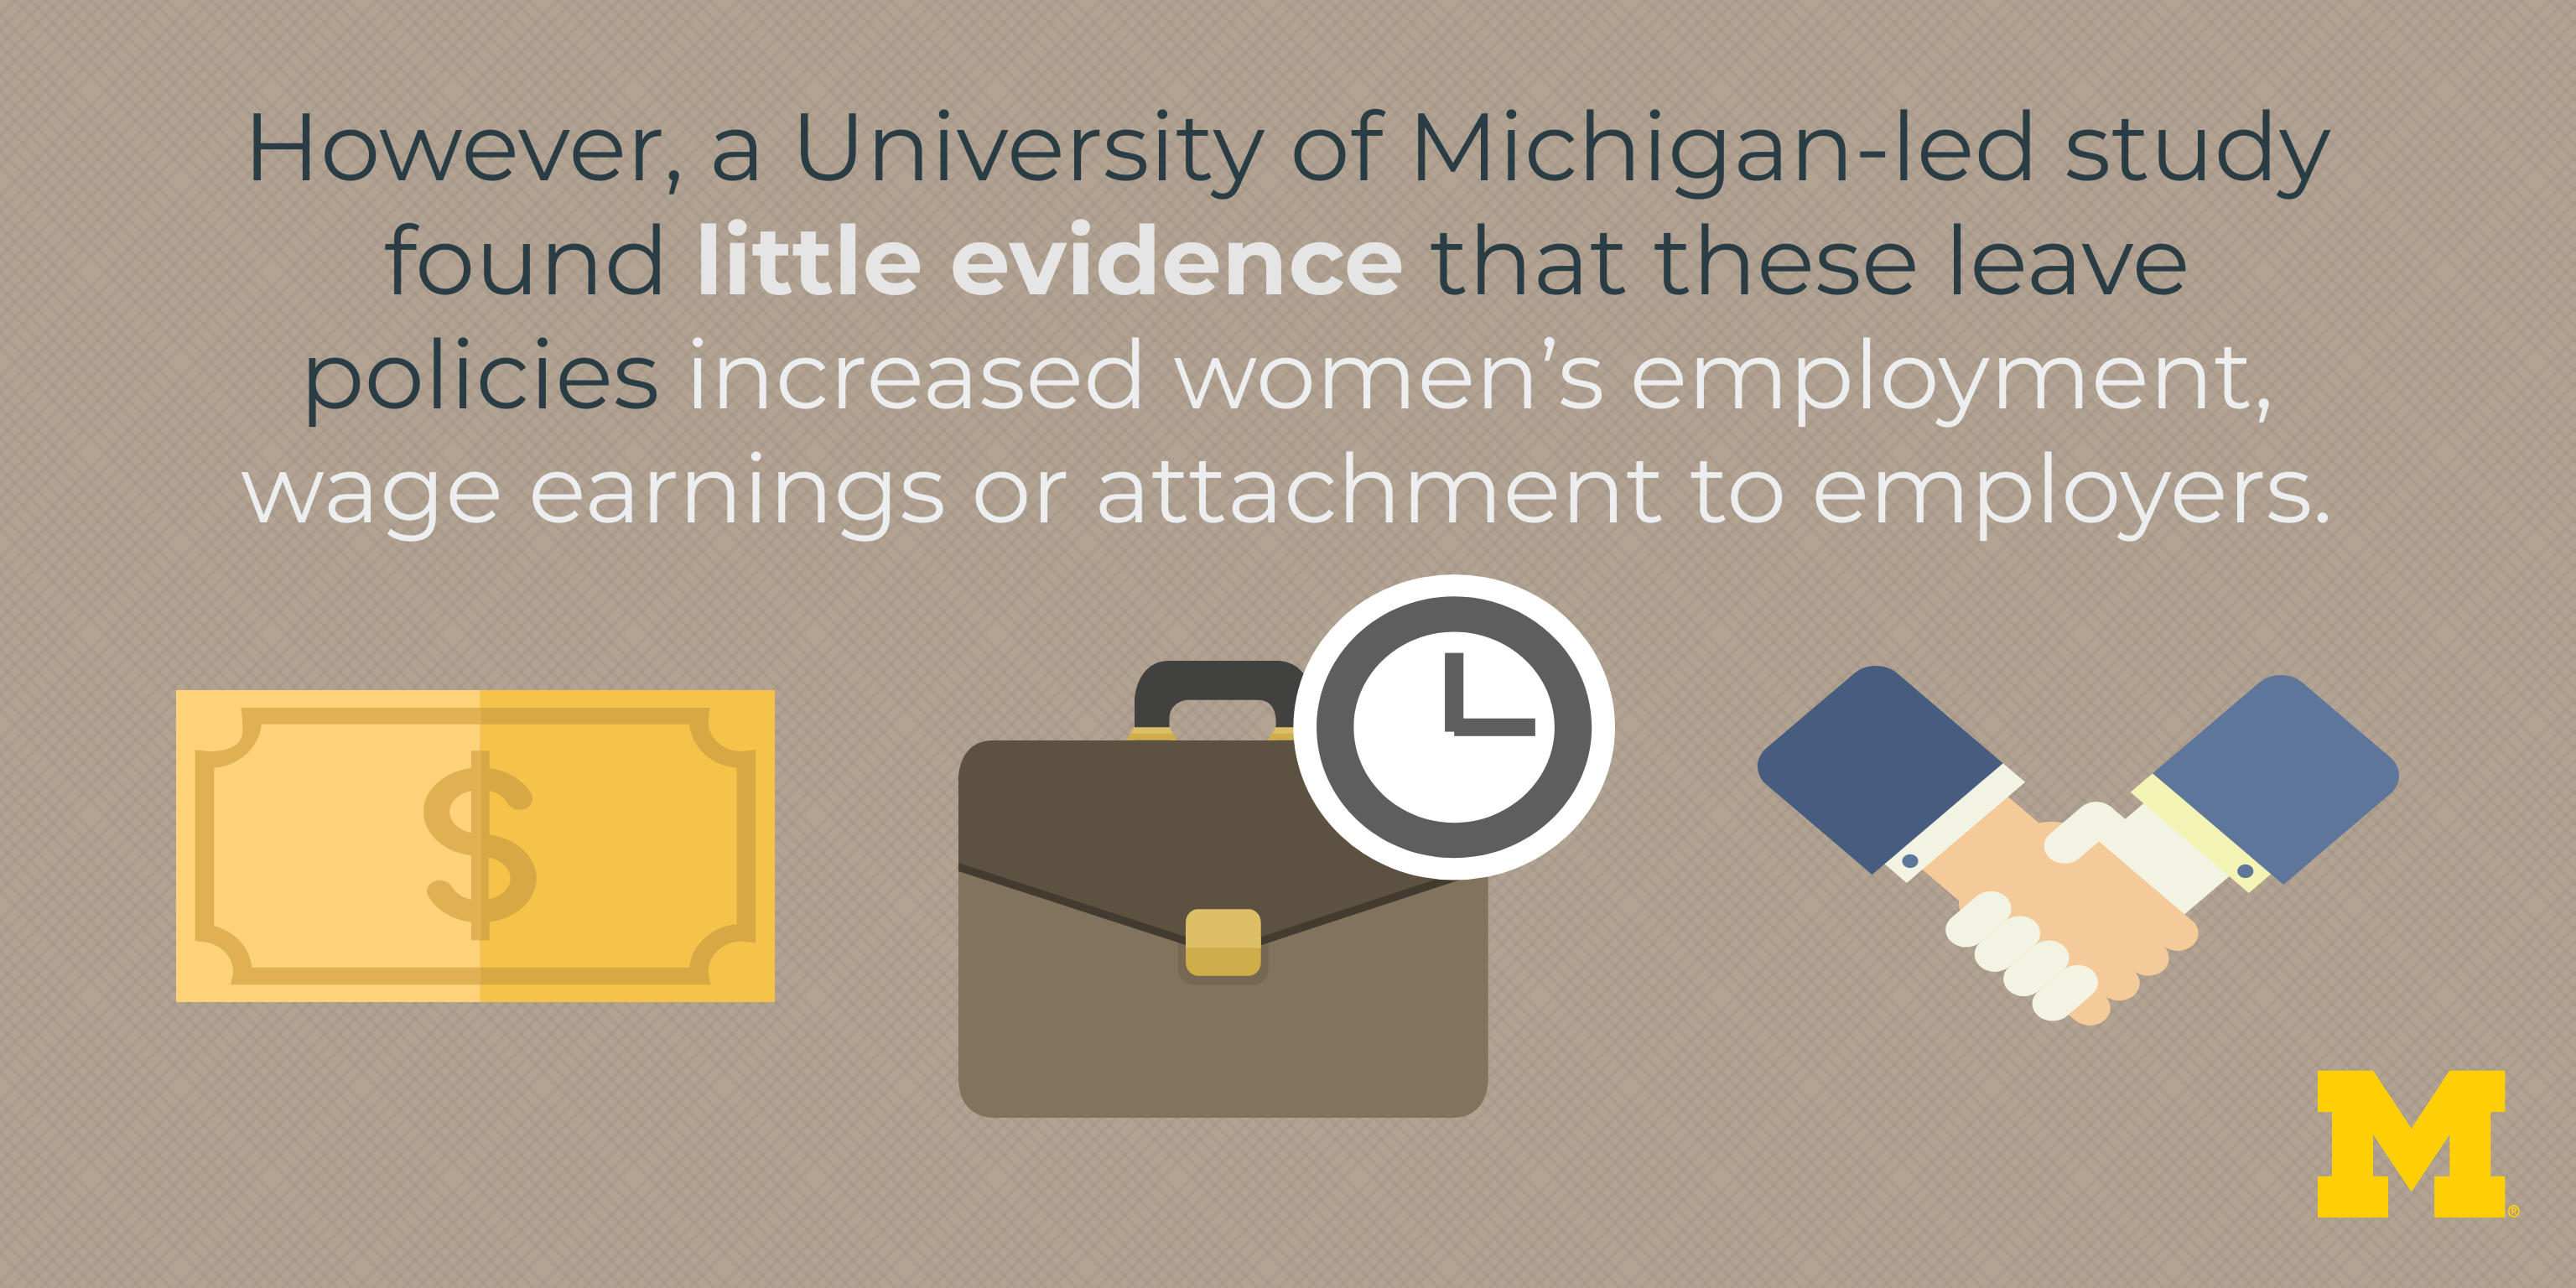 However, a University of Michigan-led study found little evidence that these leave policies increased women's employment, wage earnings or attachment to employers.